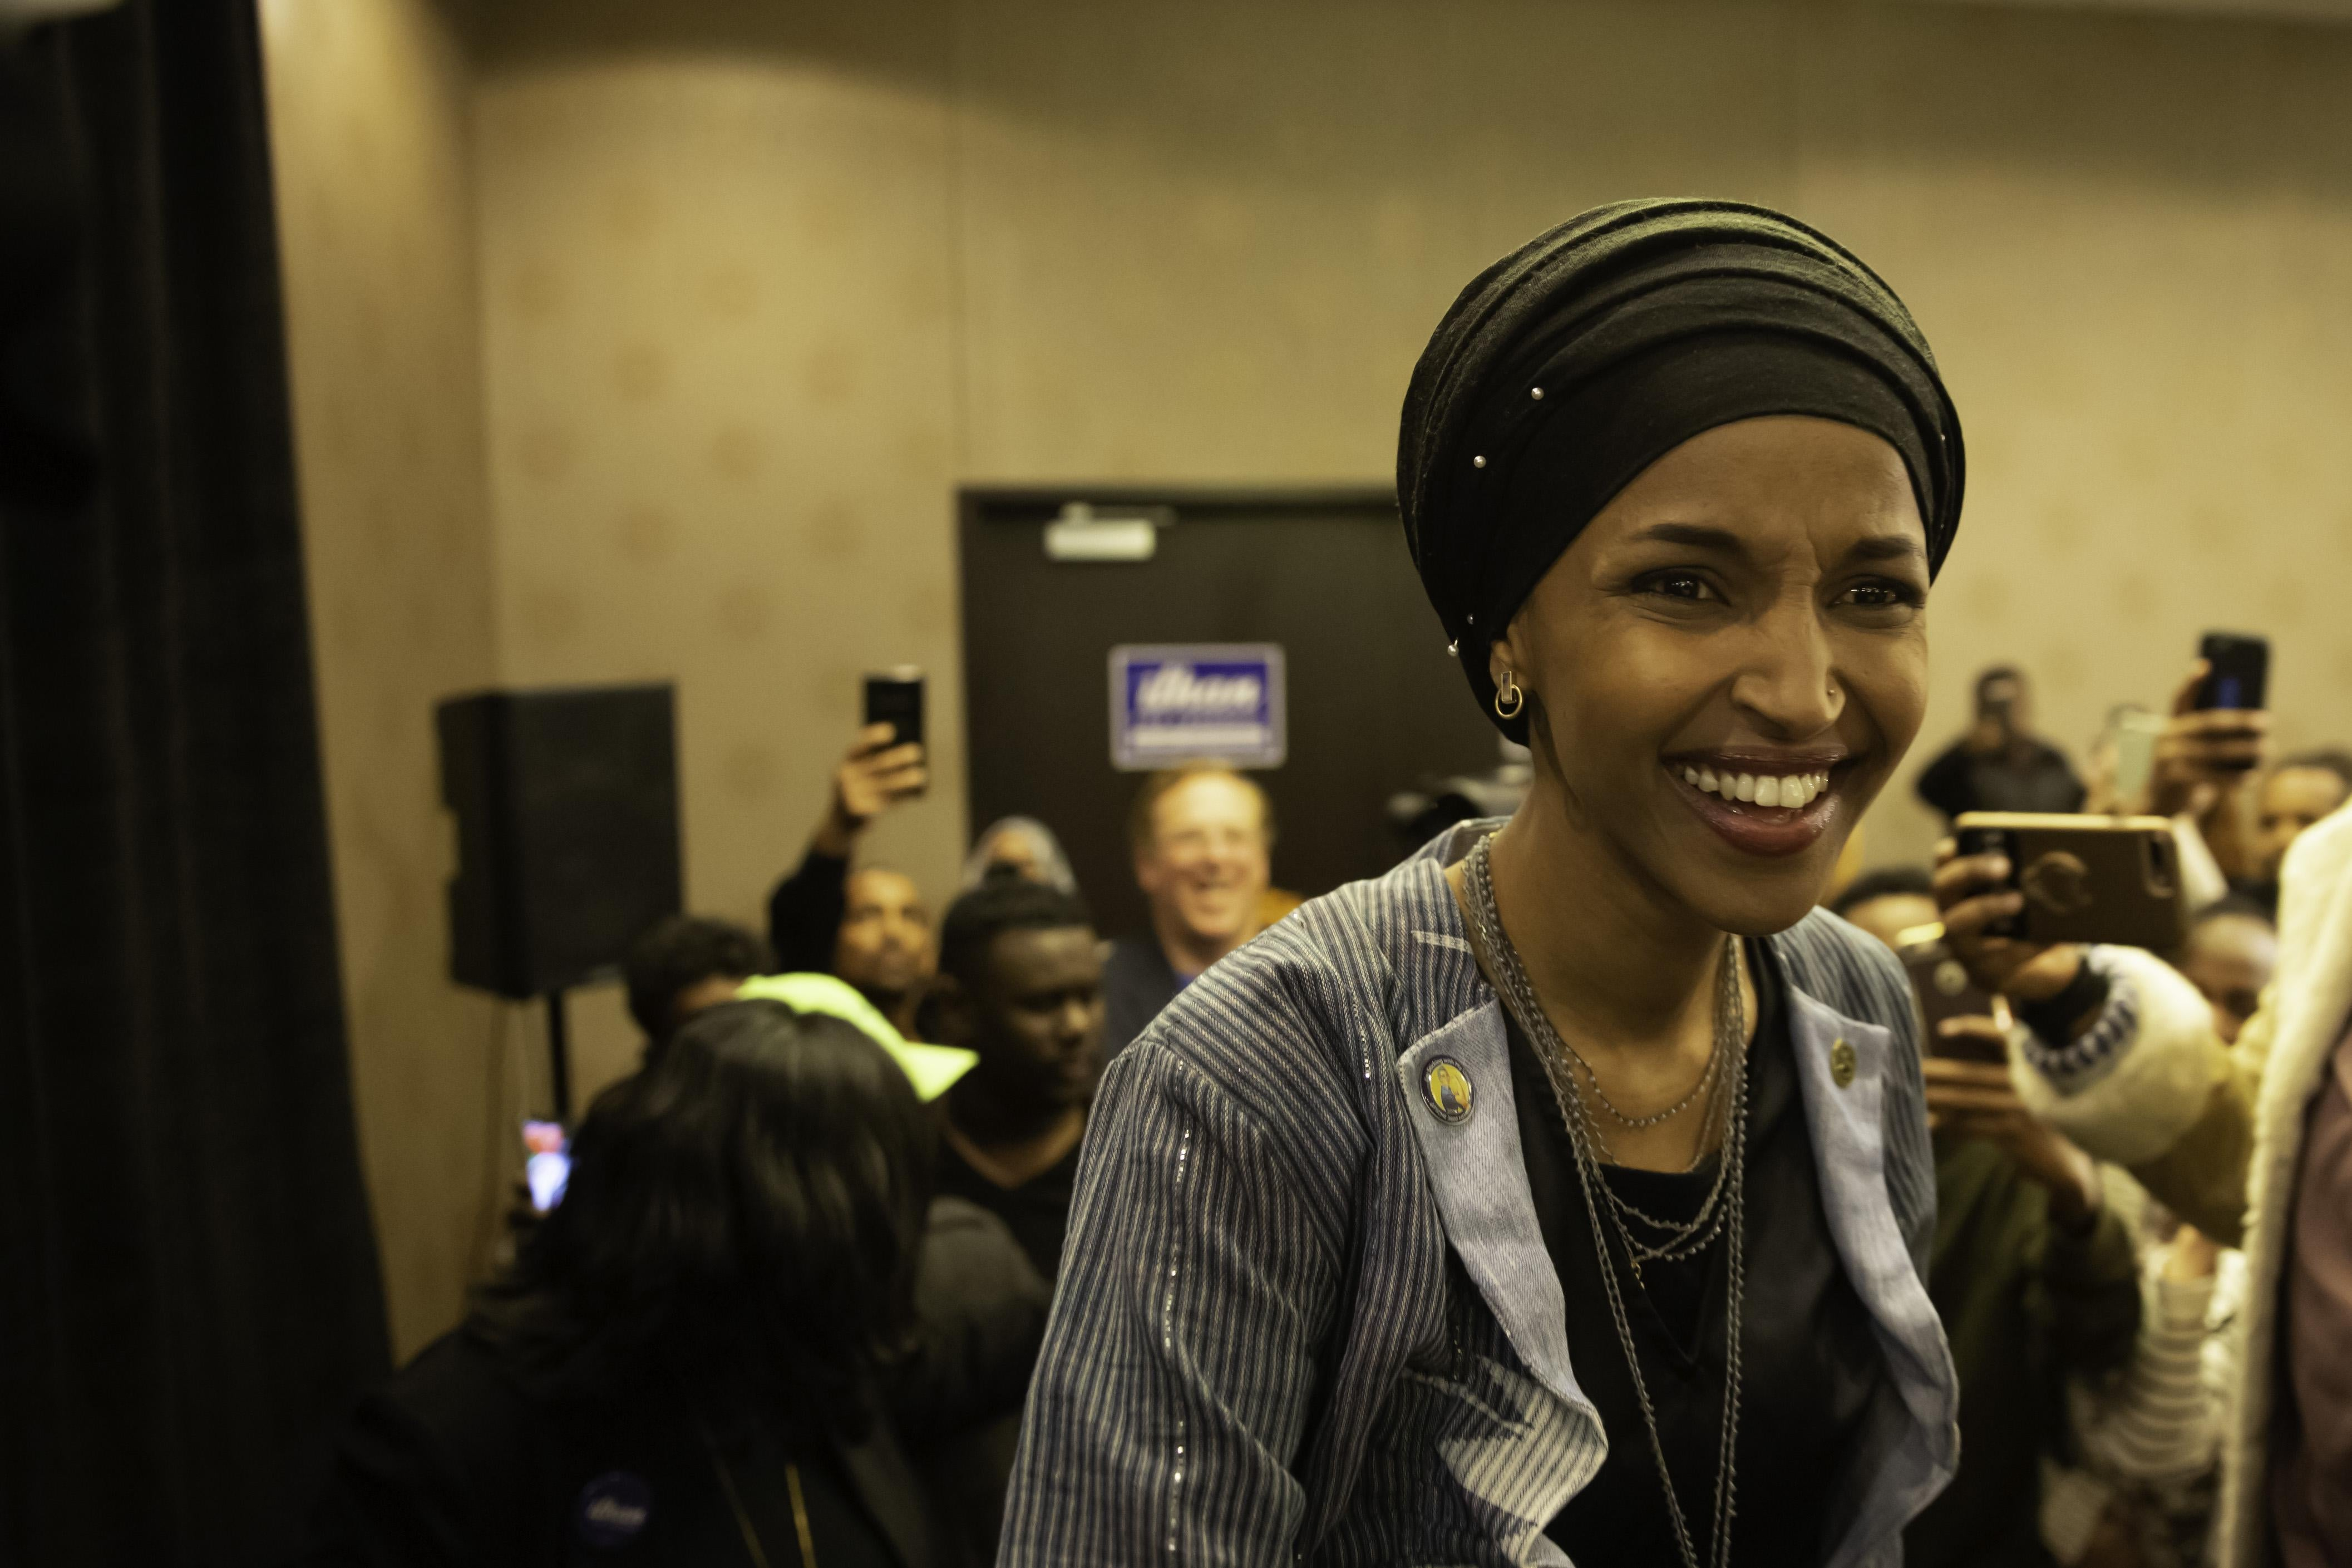 Ilhan Omar smiling, with a crowd behind her.